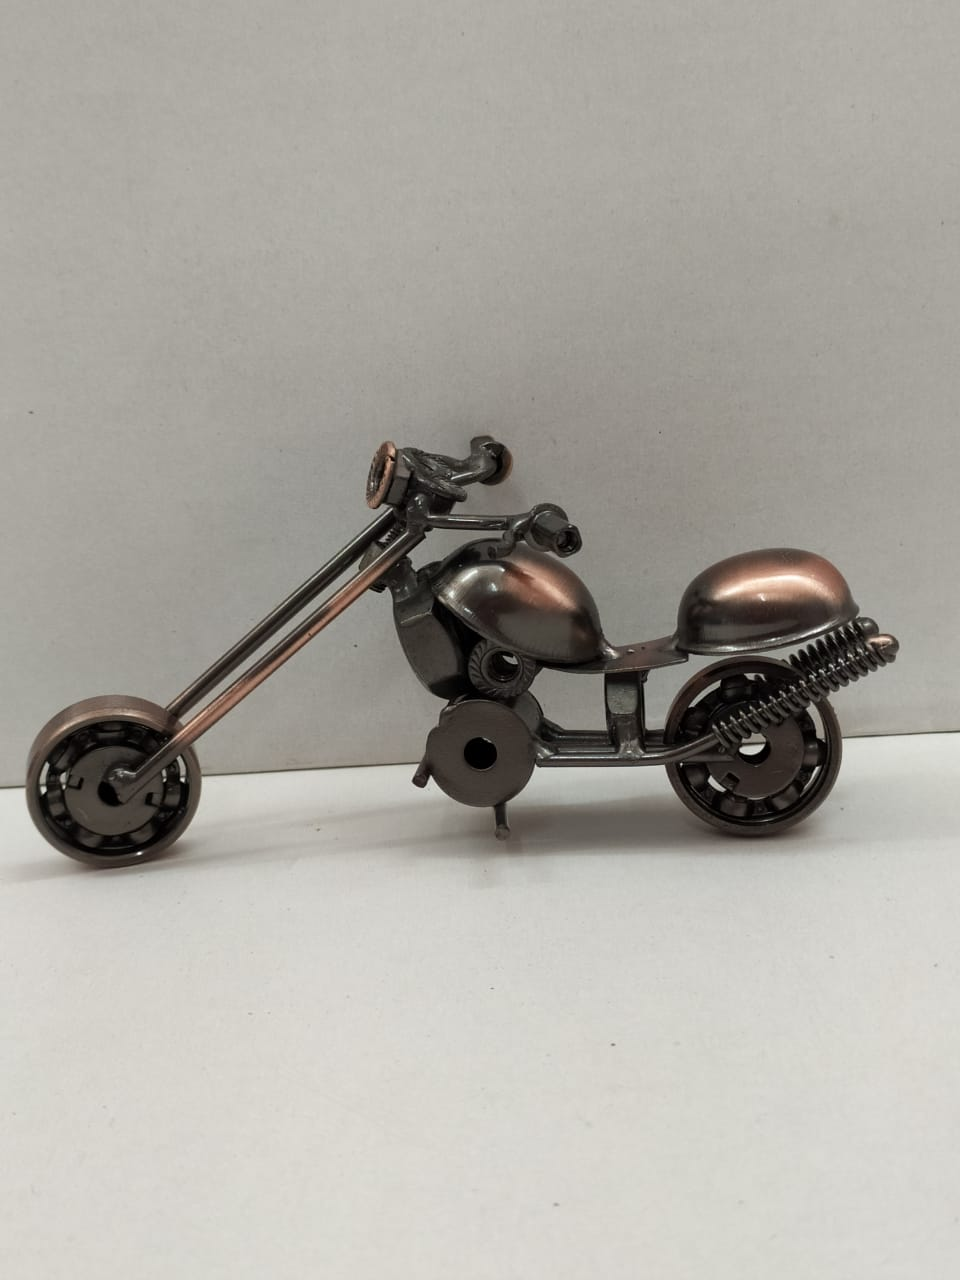 Buy Metal Antique Bike - Size Small (XM4) Online